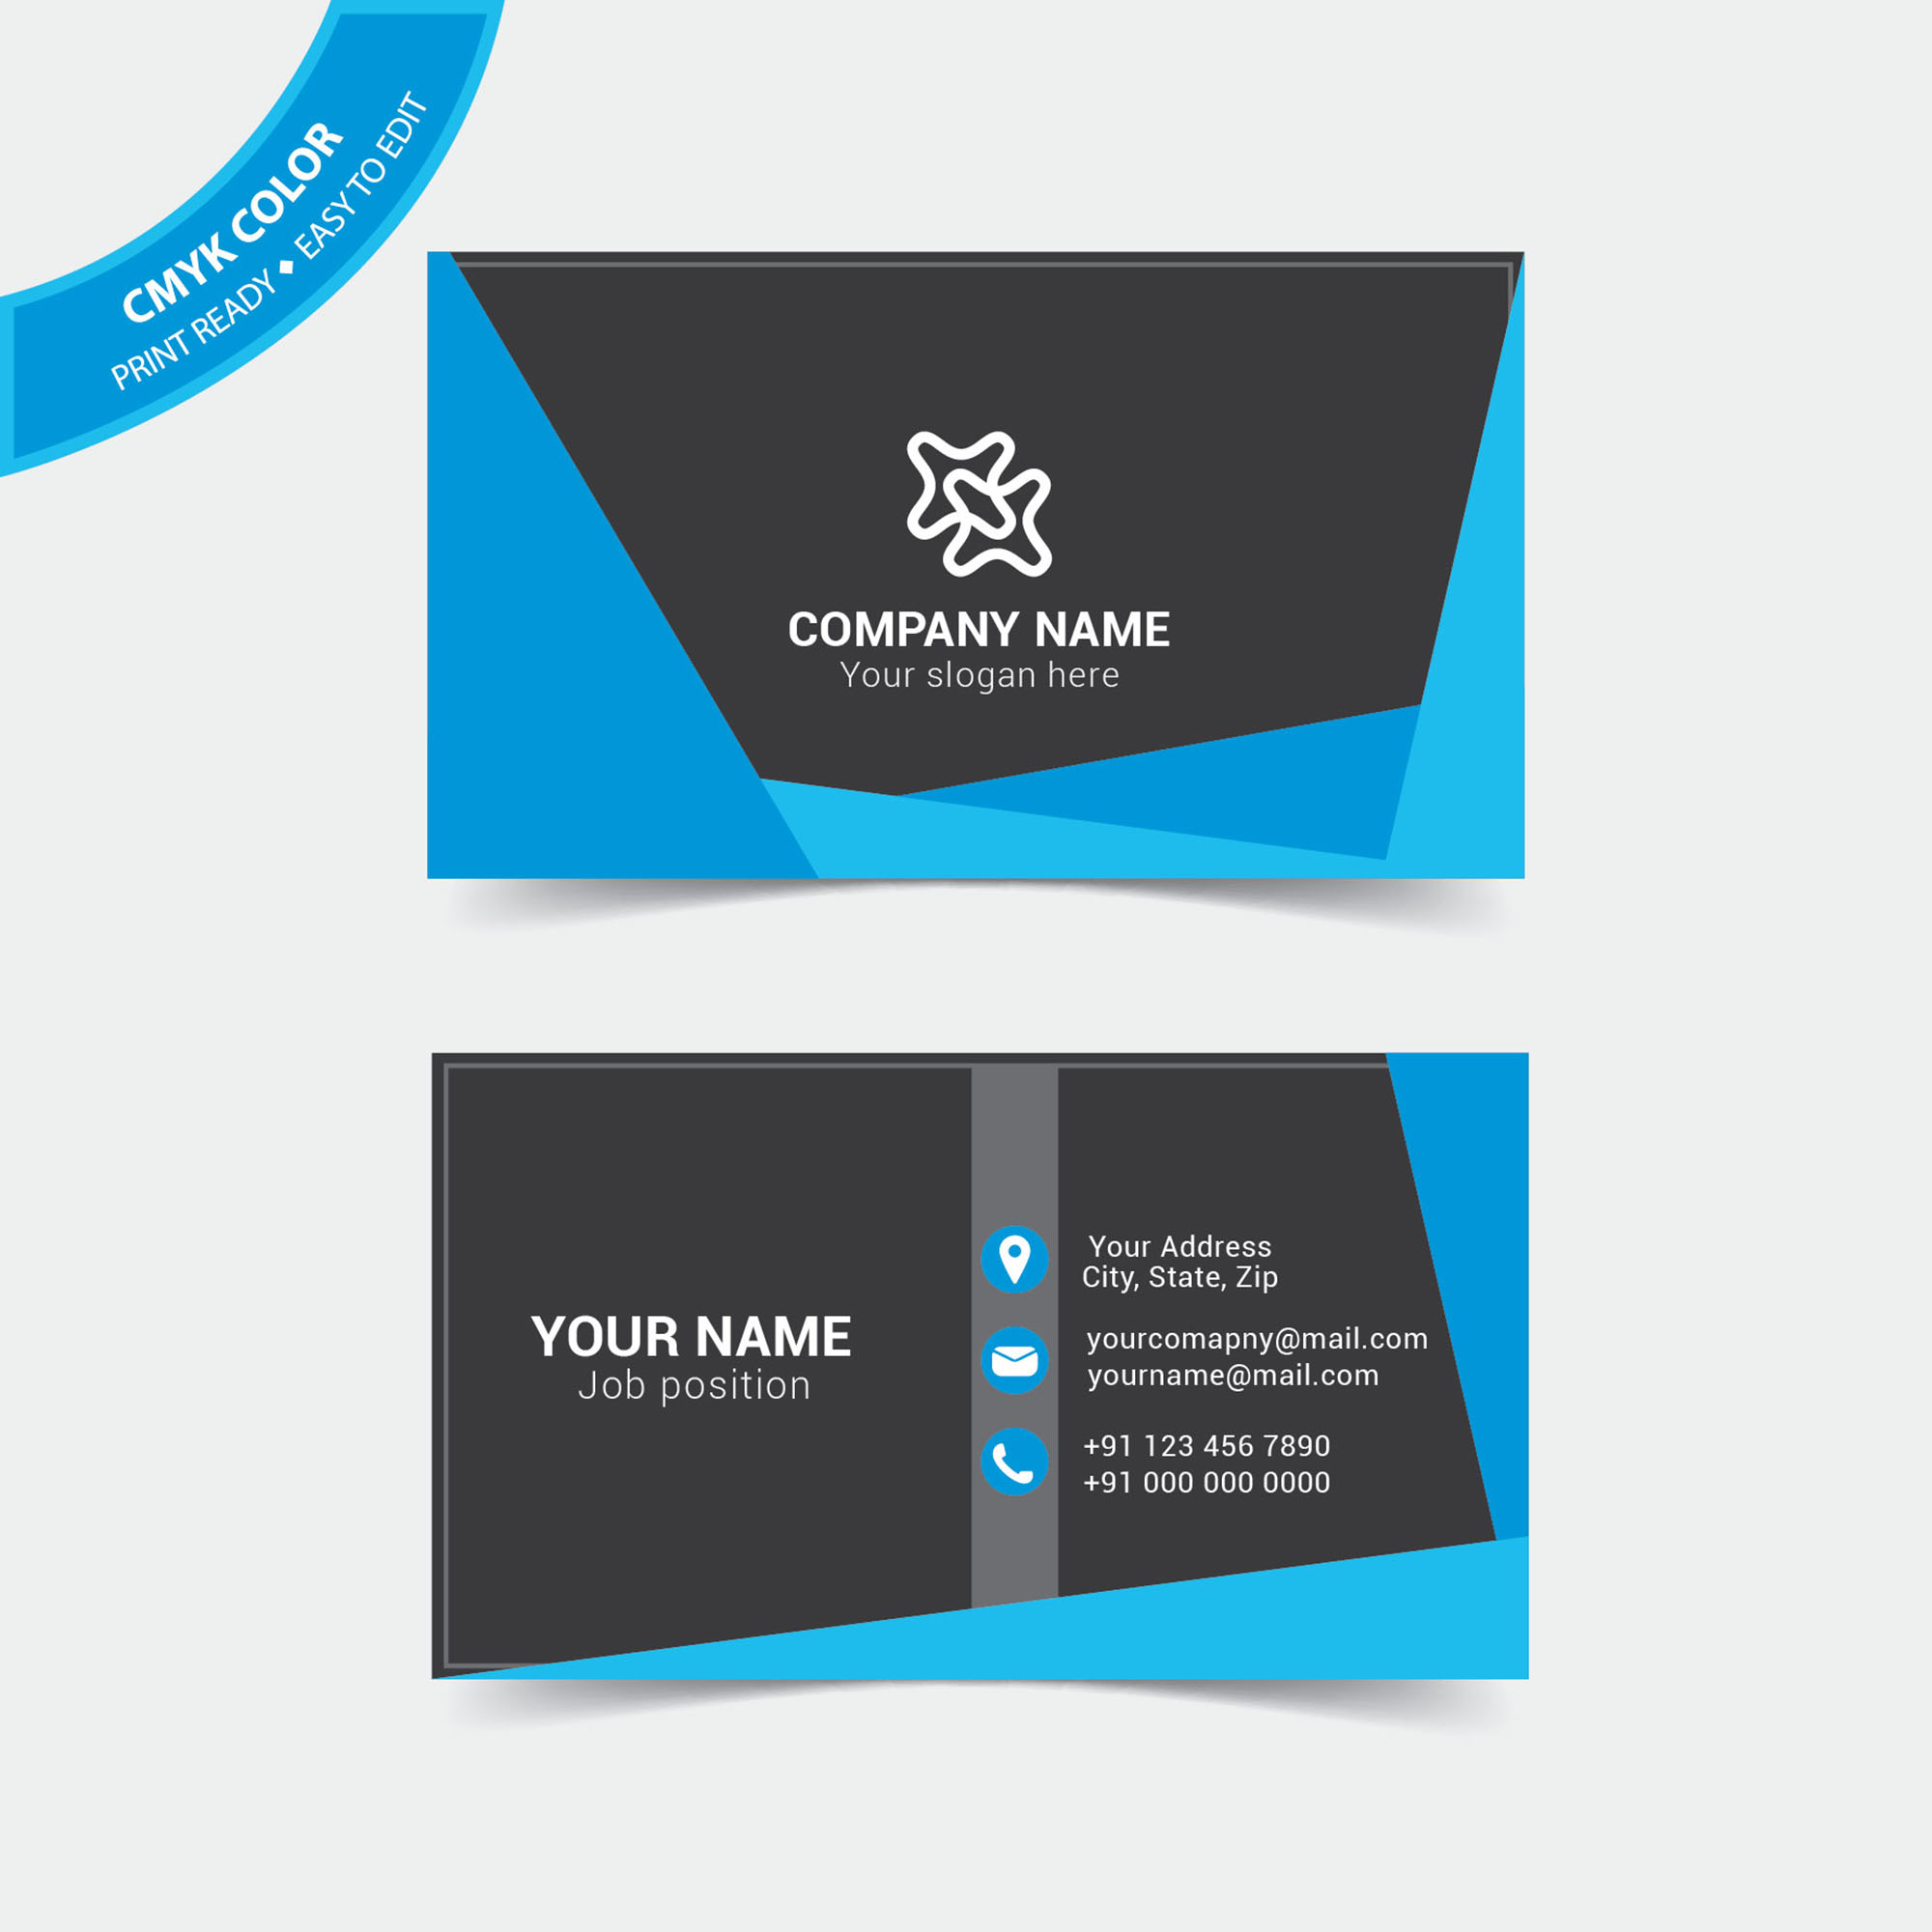 Modern Business Visiting Card Design Free Download - Wisxi.com